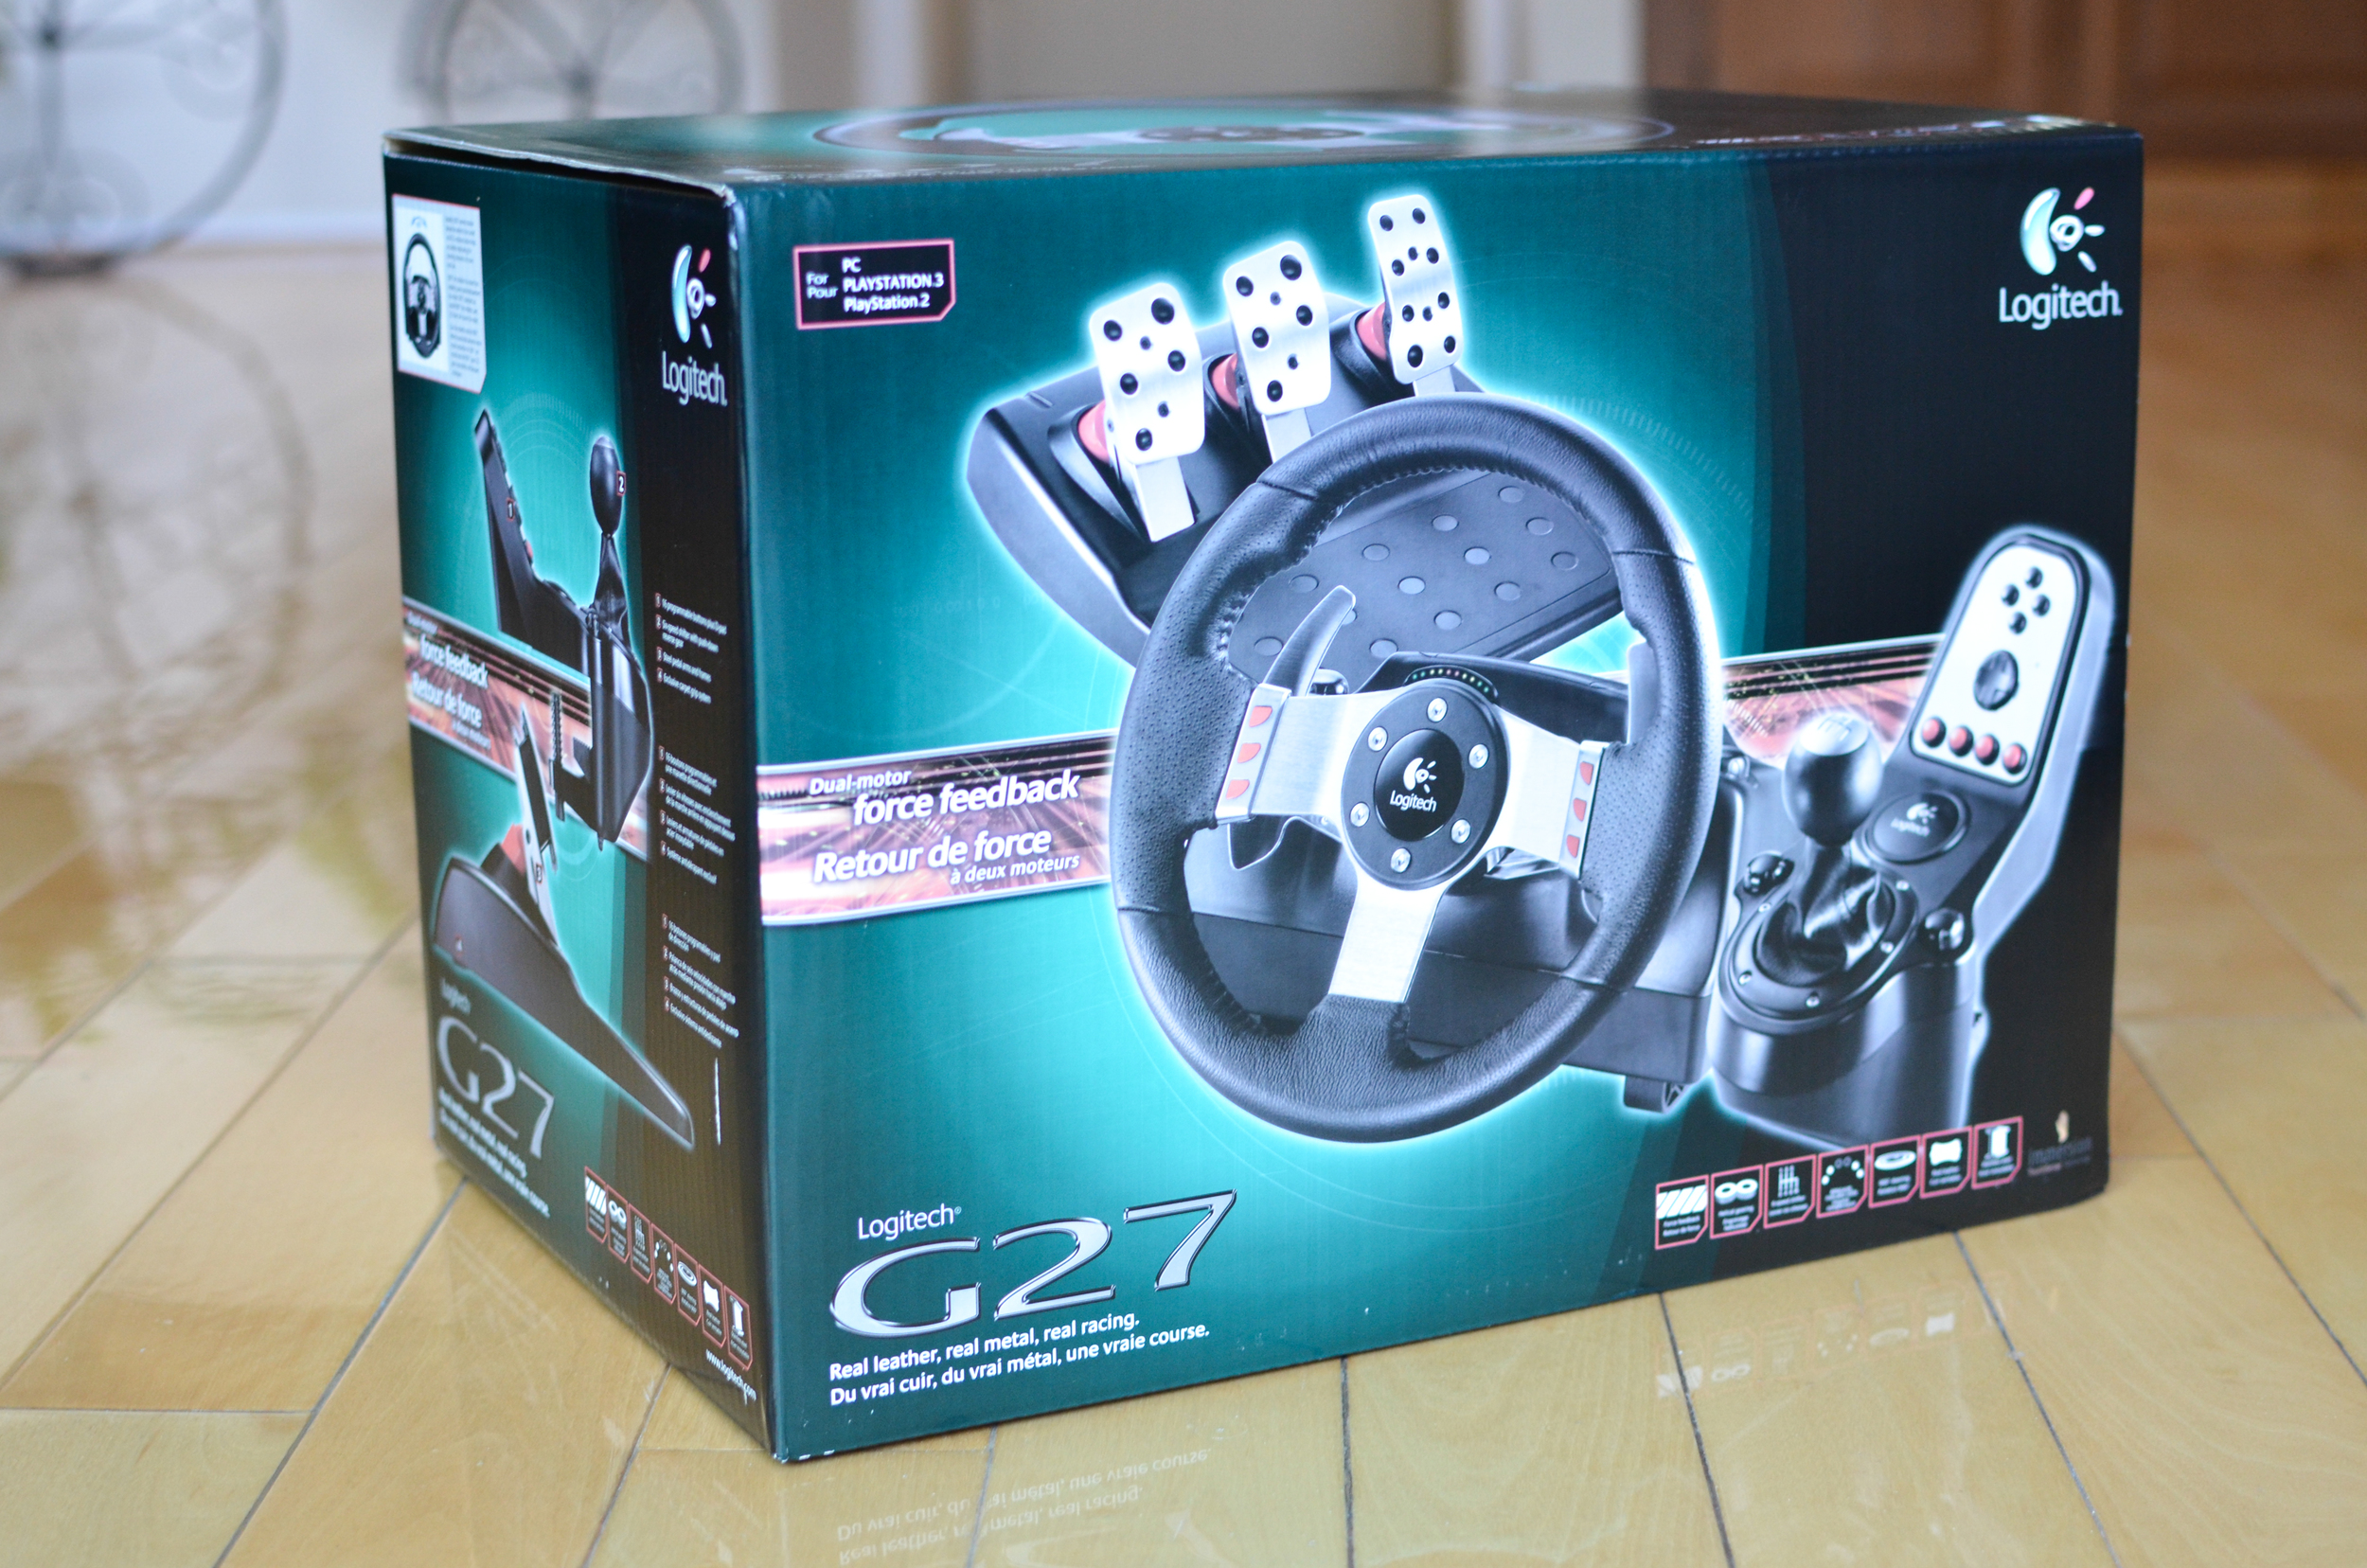 14c987e5a0d The Logitech G27 comes in a massive box that includes the steering wheel,  shifter, pedals, power bricks, and various manuals. My first impression is  that ...